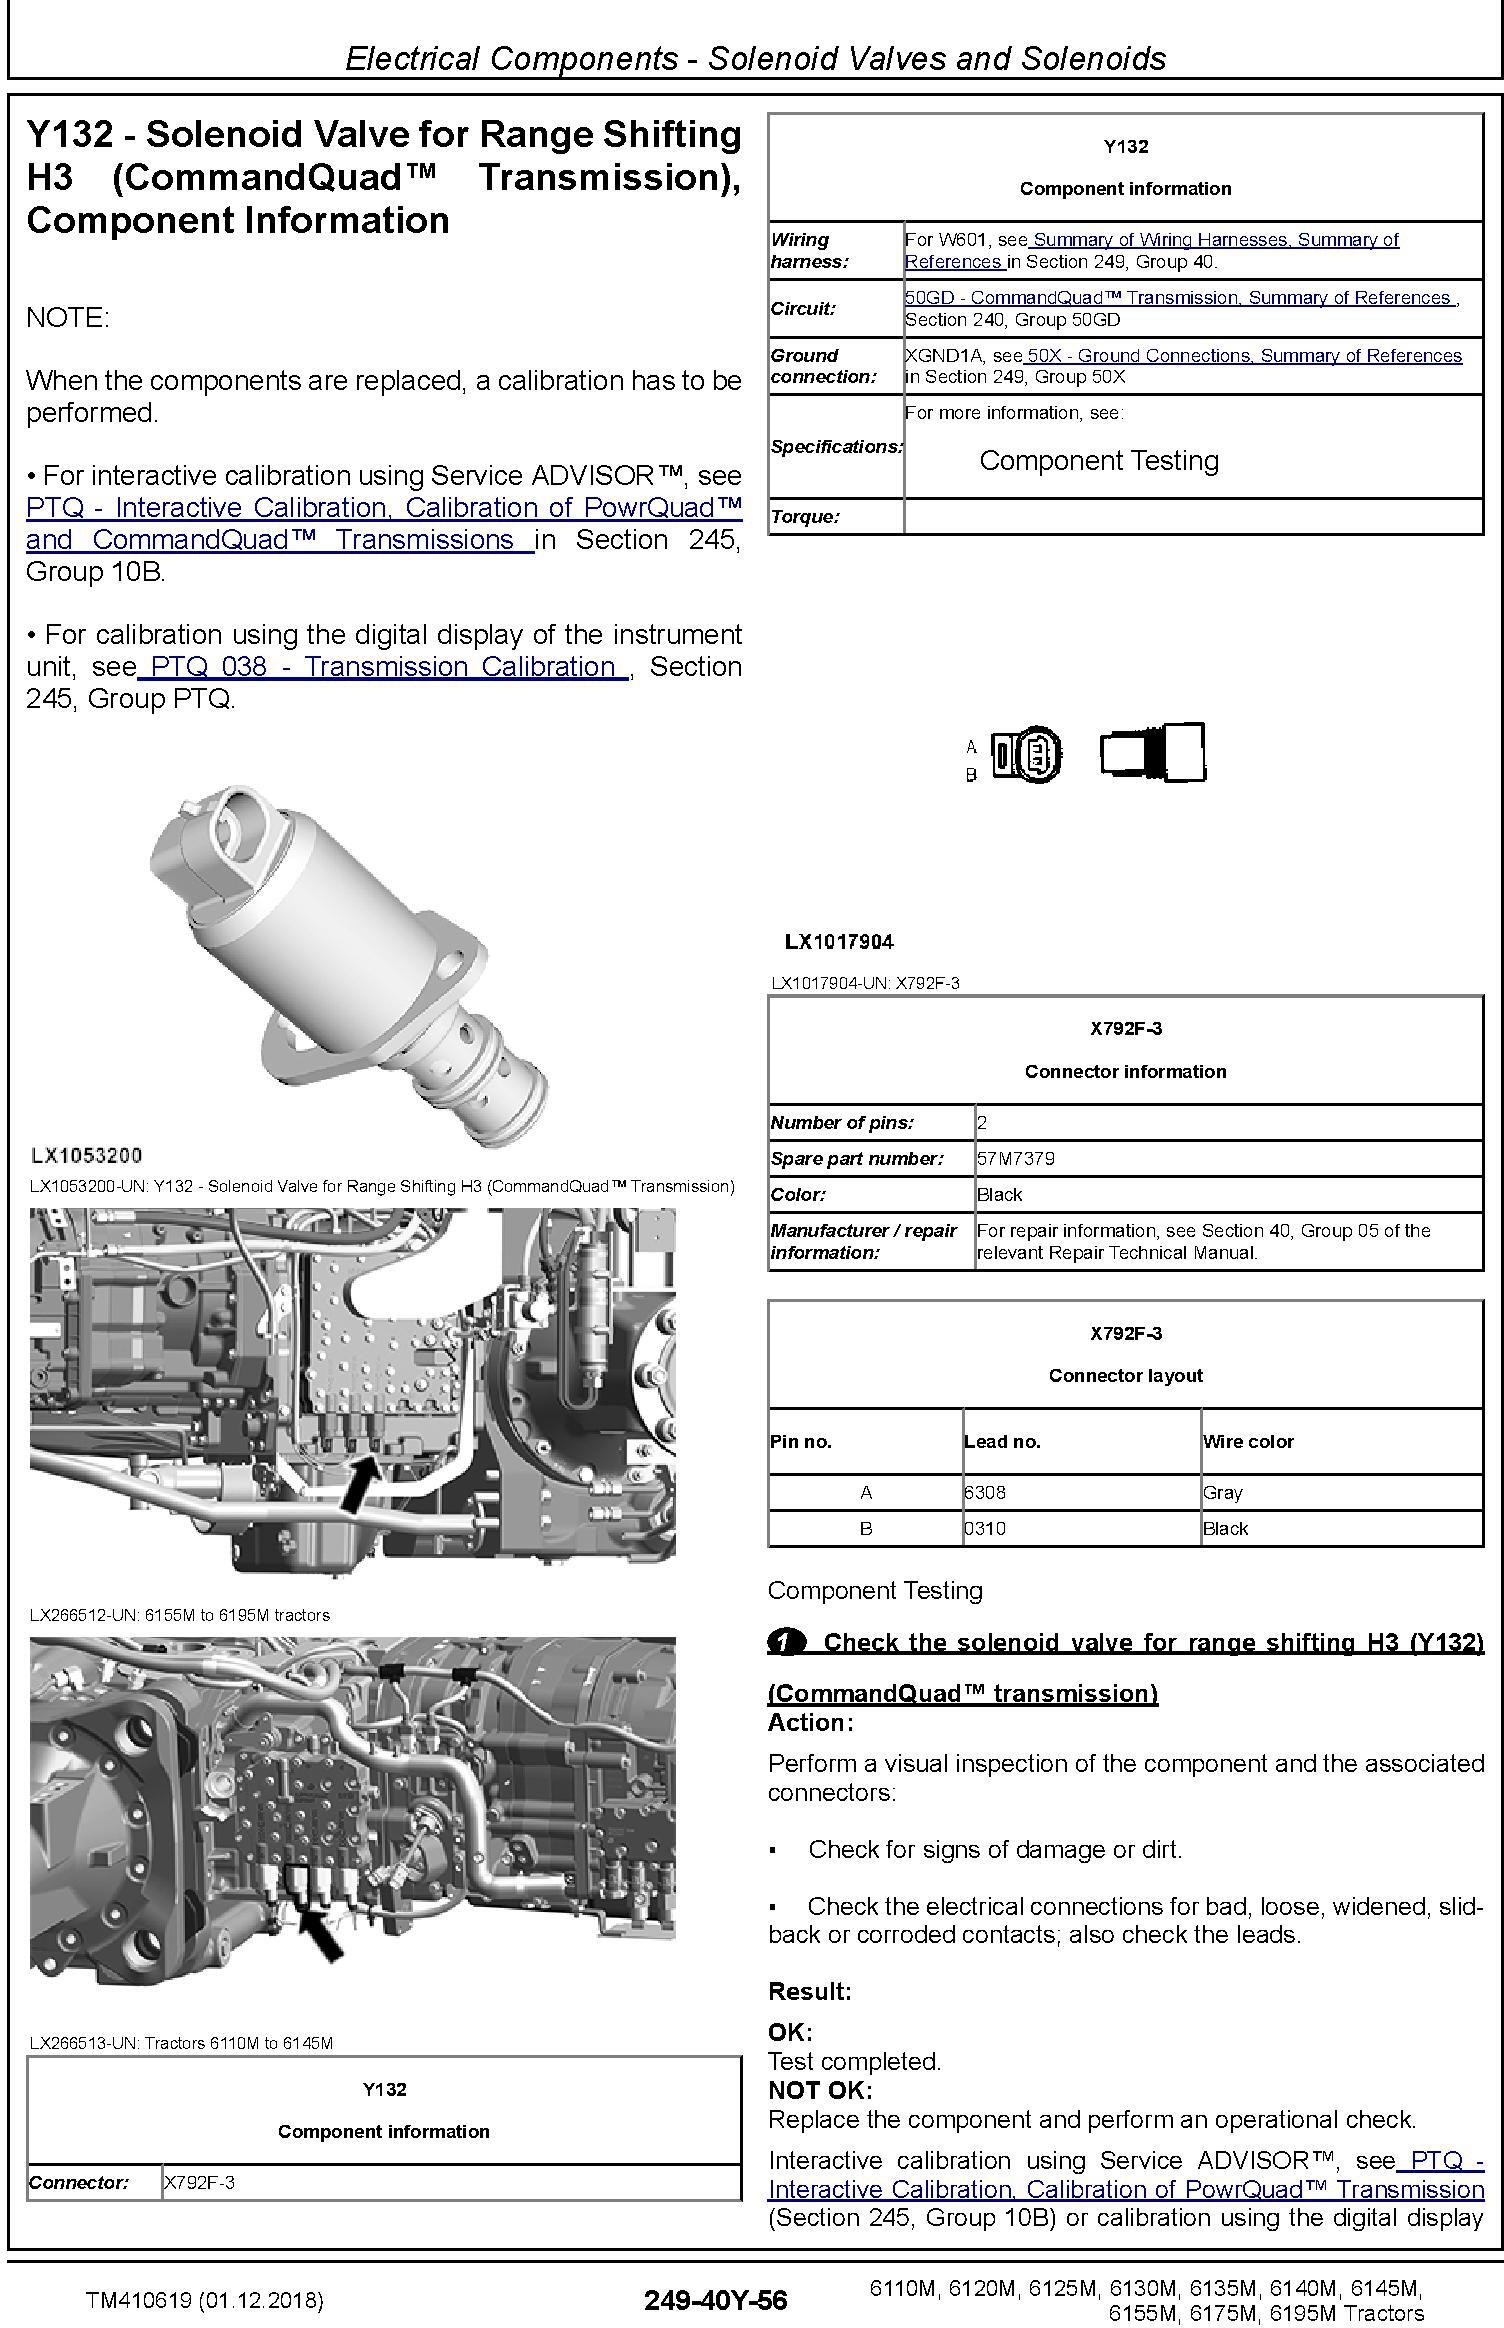 John Deere 6110M/20M 6130M/40M 6125M/35M 6145M/55M 6175M 6195M Tractors Diagnostic Manual (TM410619) - 1